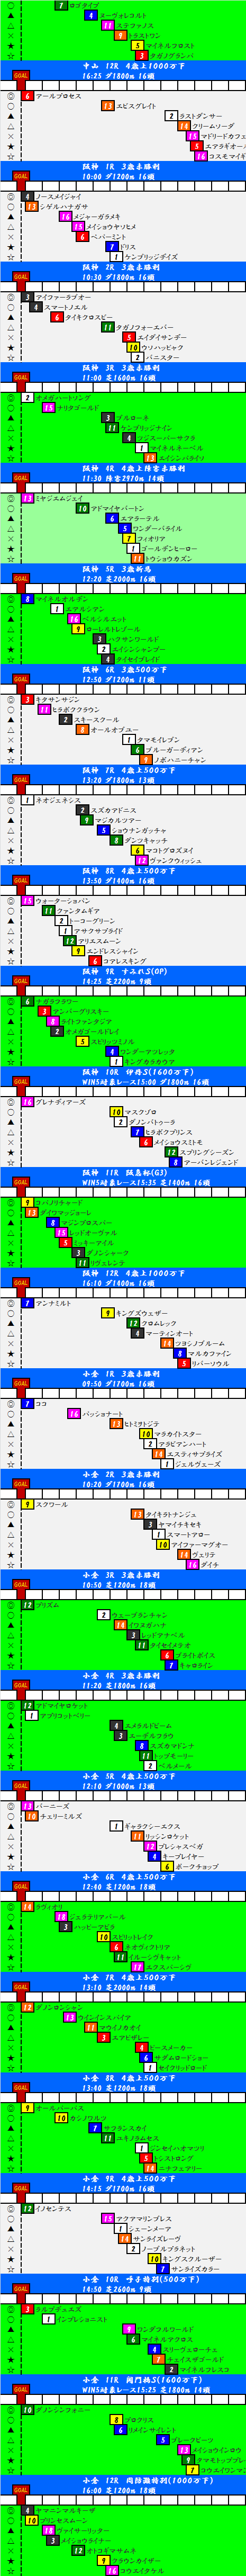 2015030102.png